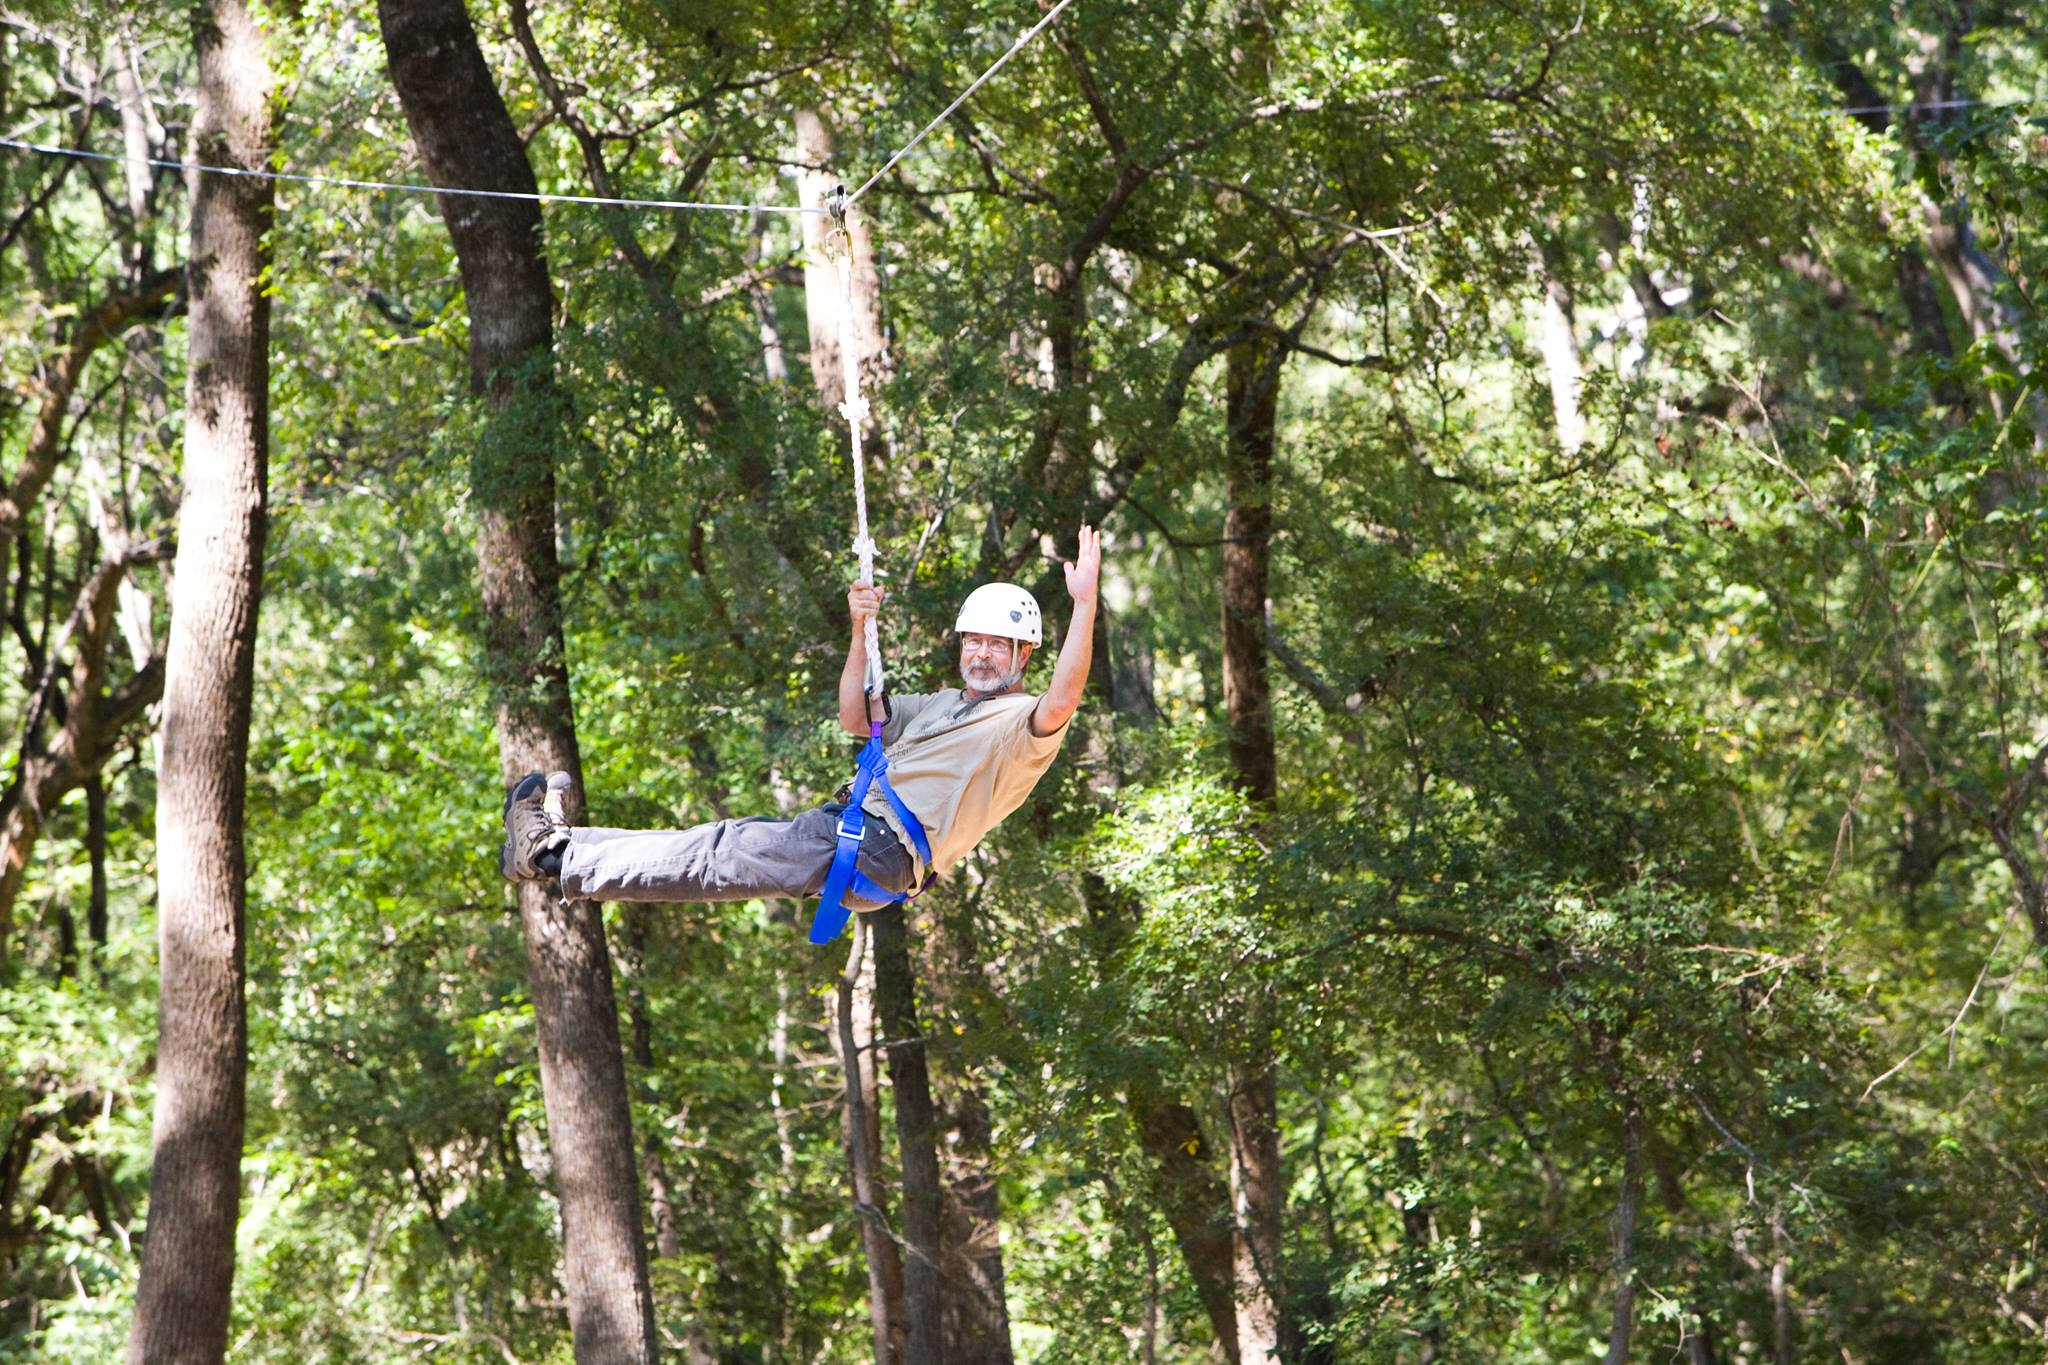 Zip Line Day, Heard Natural Science Museum and Wildlife Sanctuary